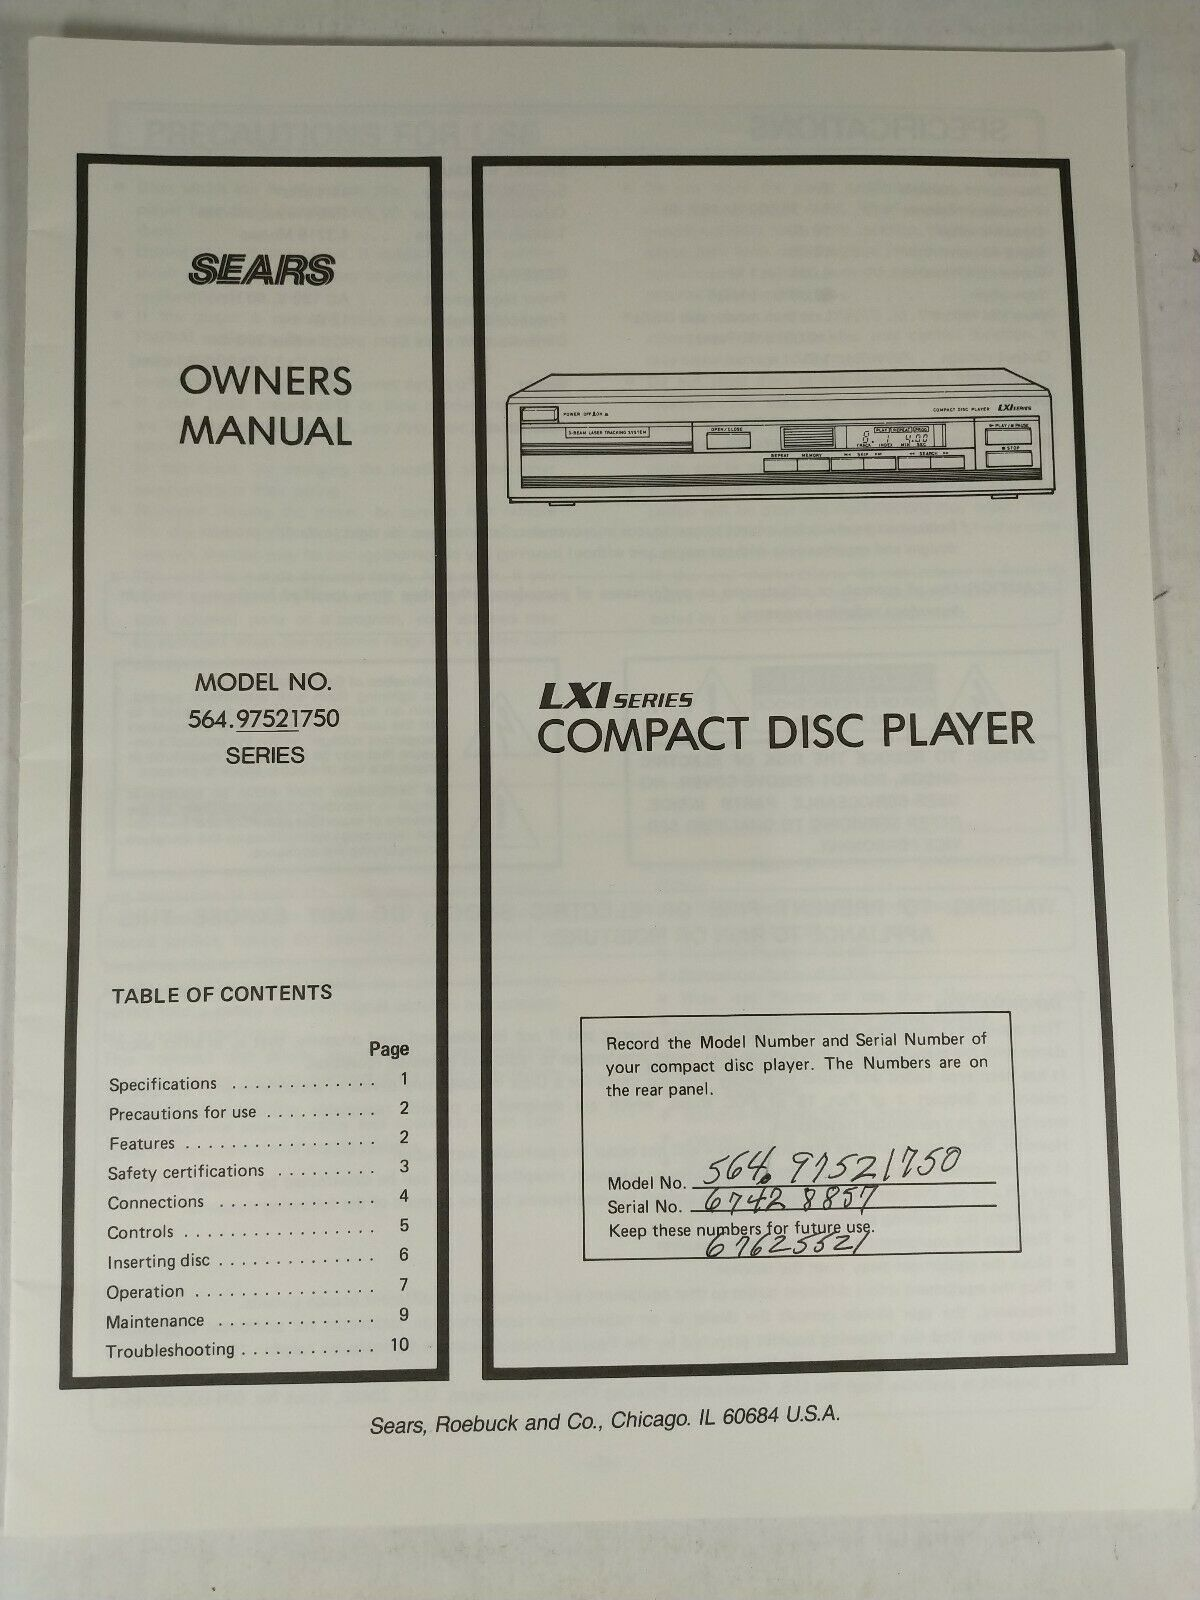 Sears LXI Series CD Player Model 564.97521750 Owners Manual - $9.95